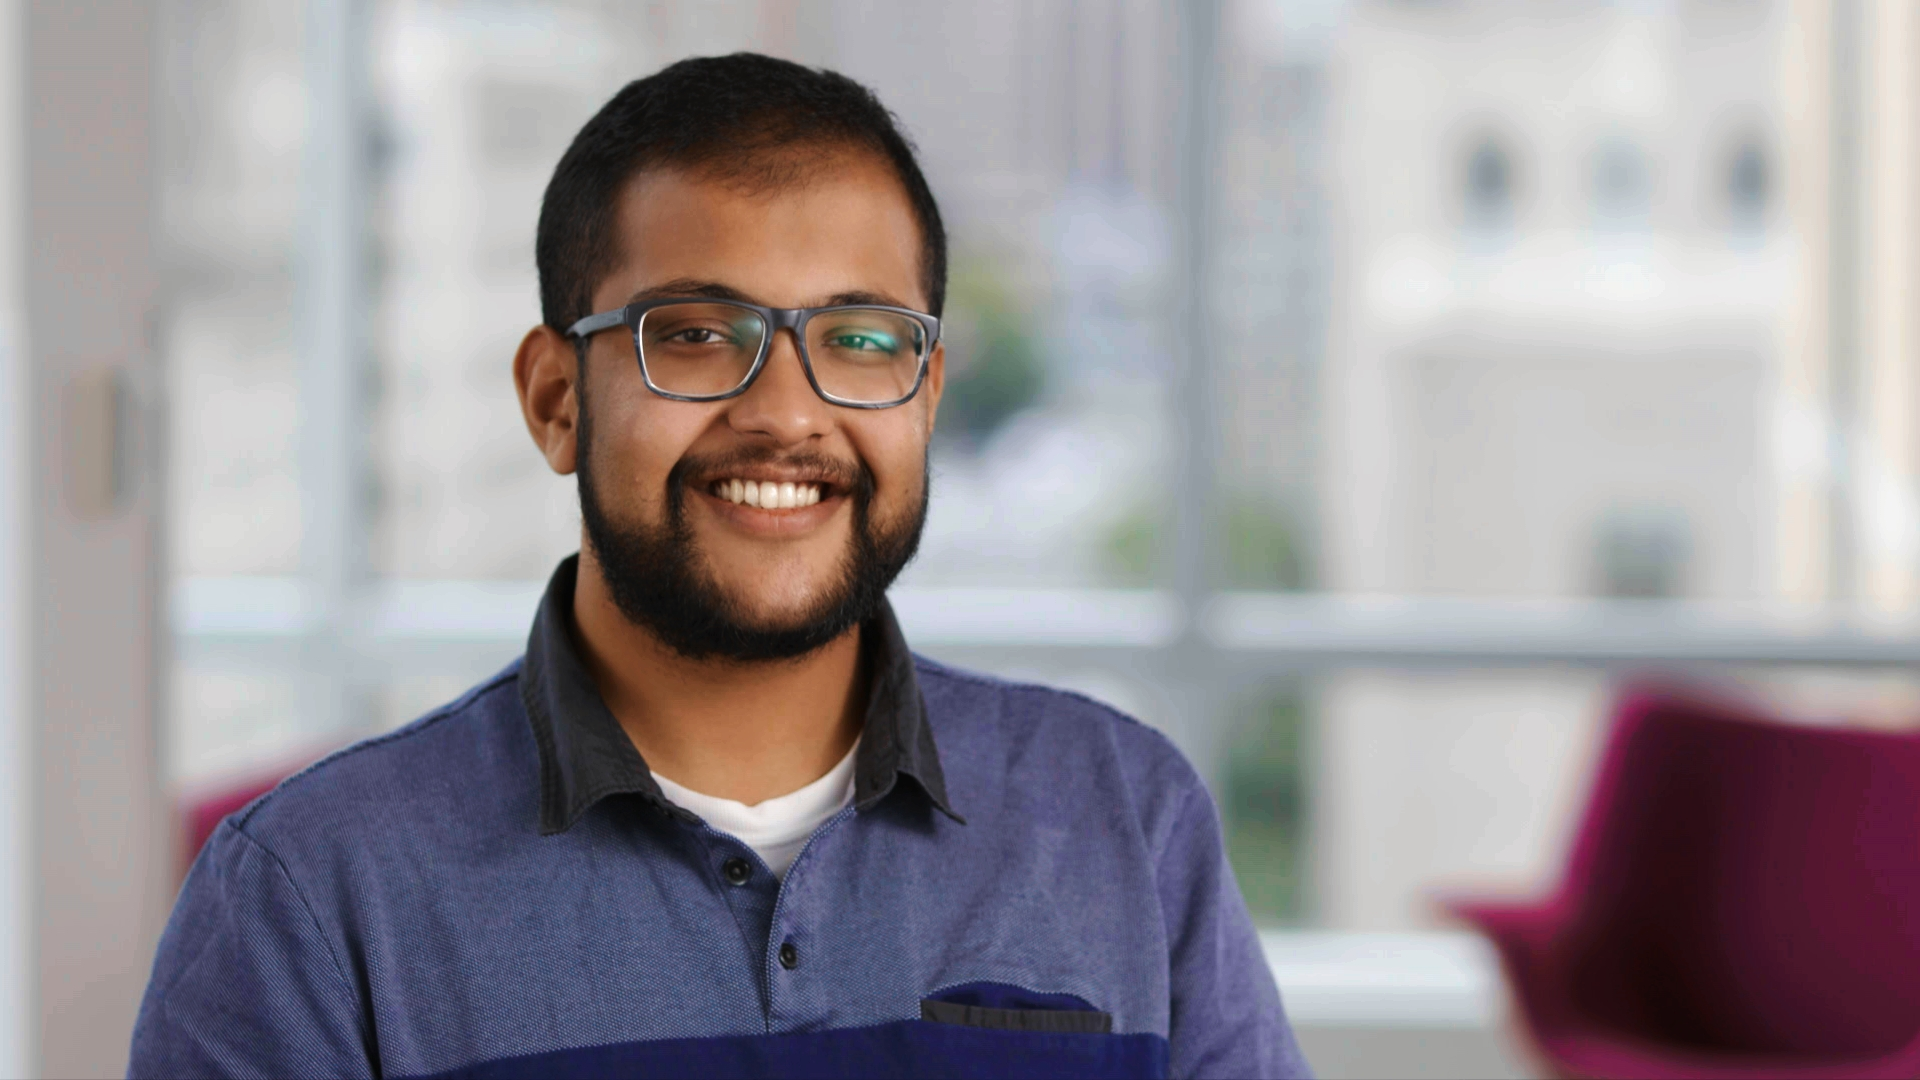 Pranjal- Working at Liberty Mutual